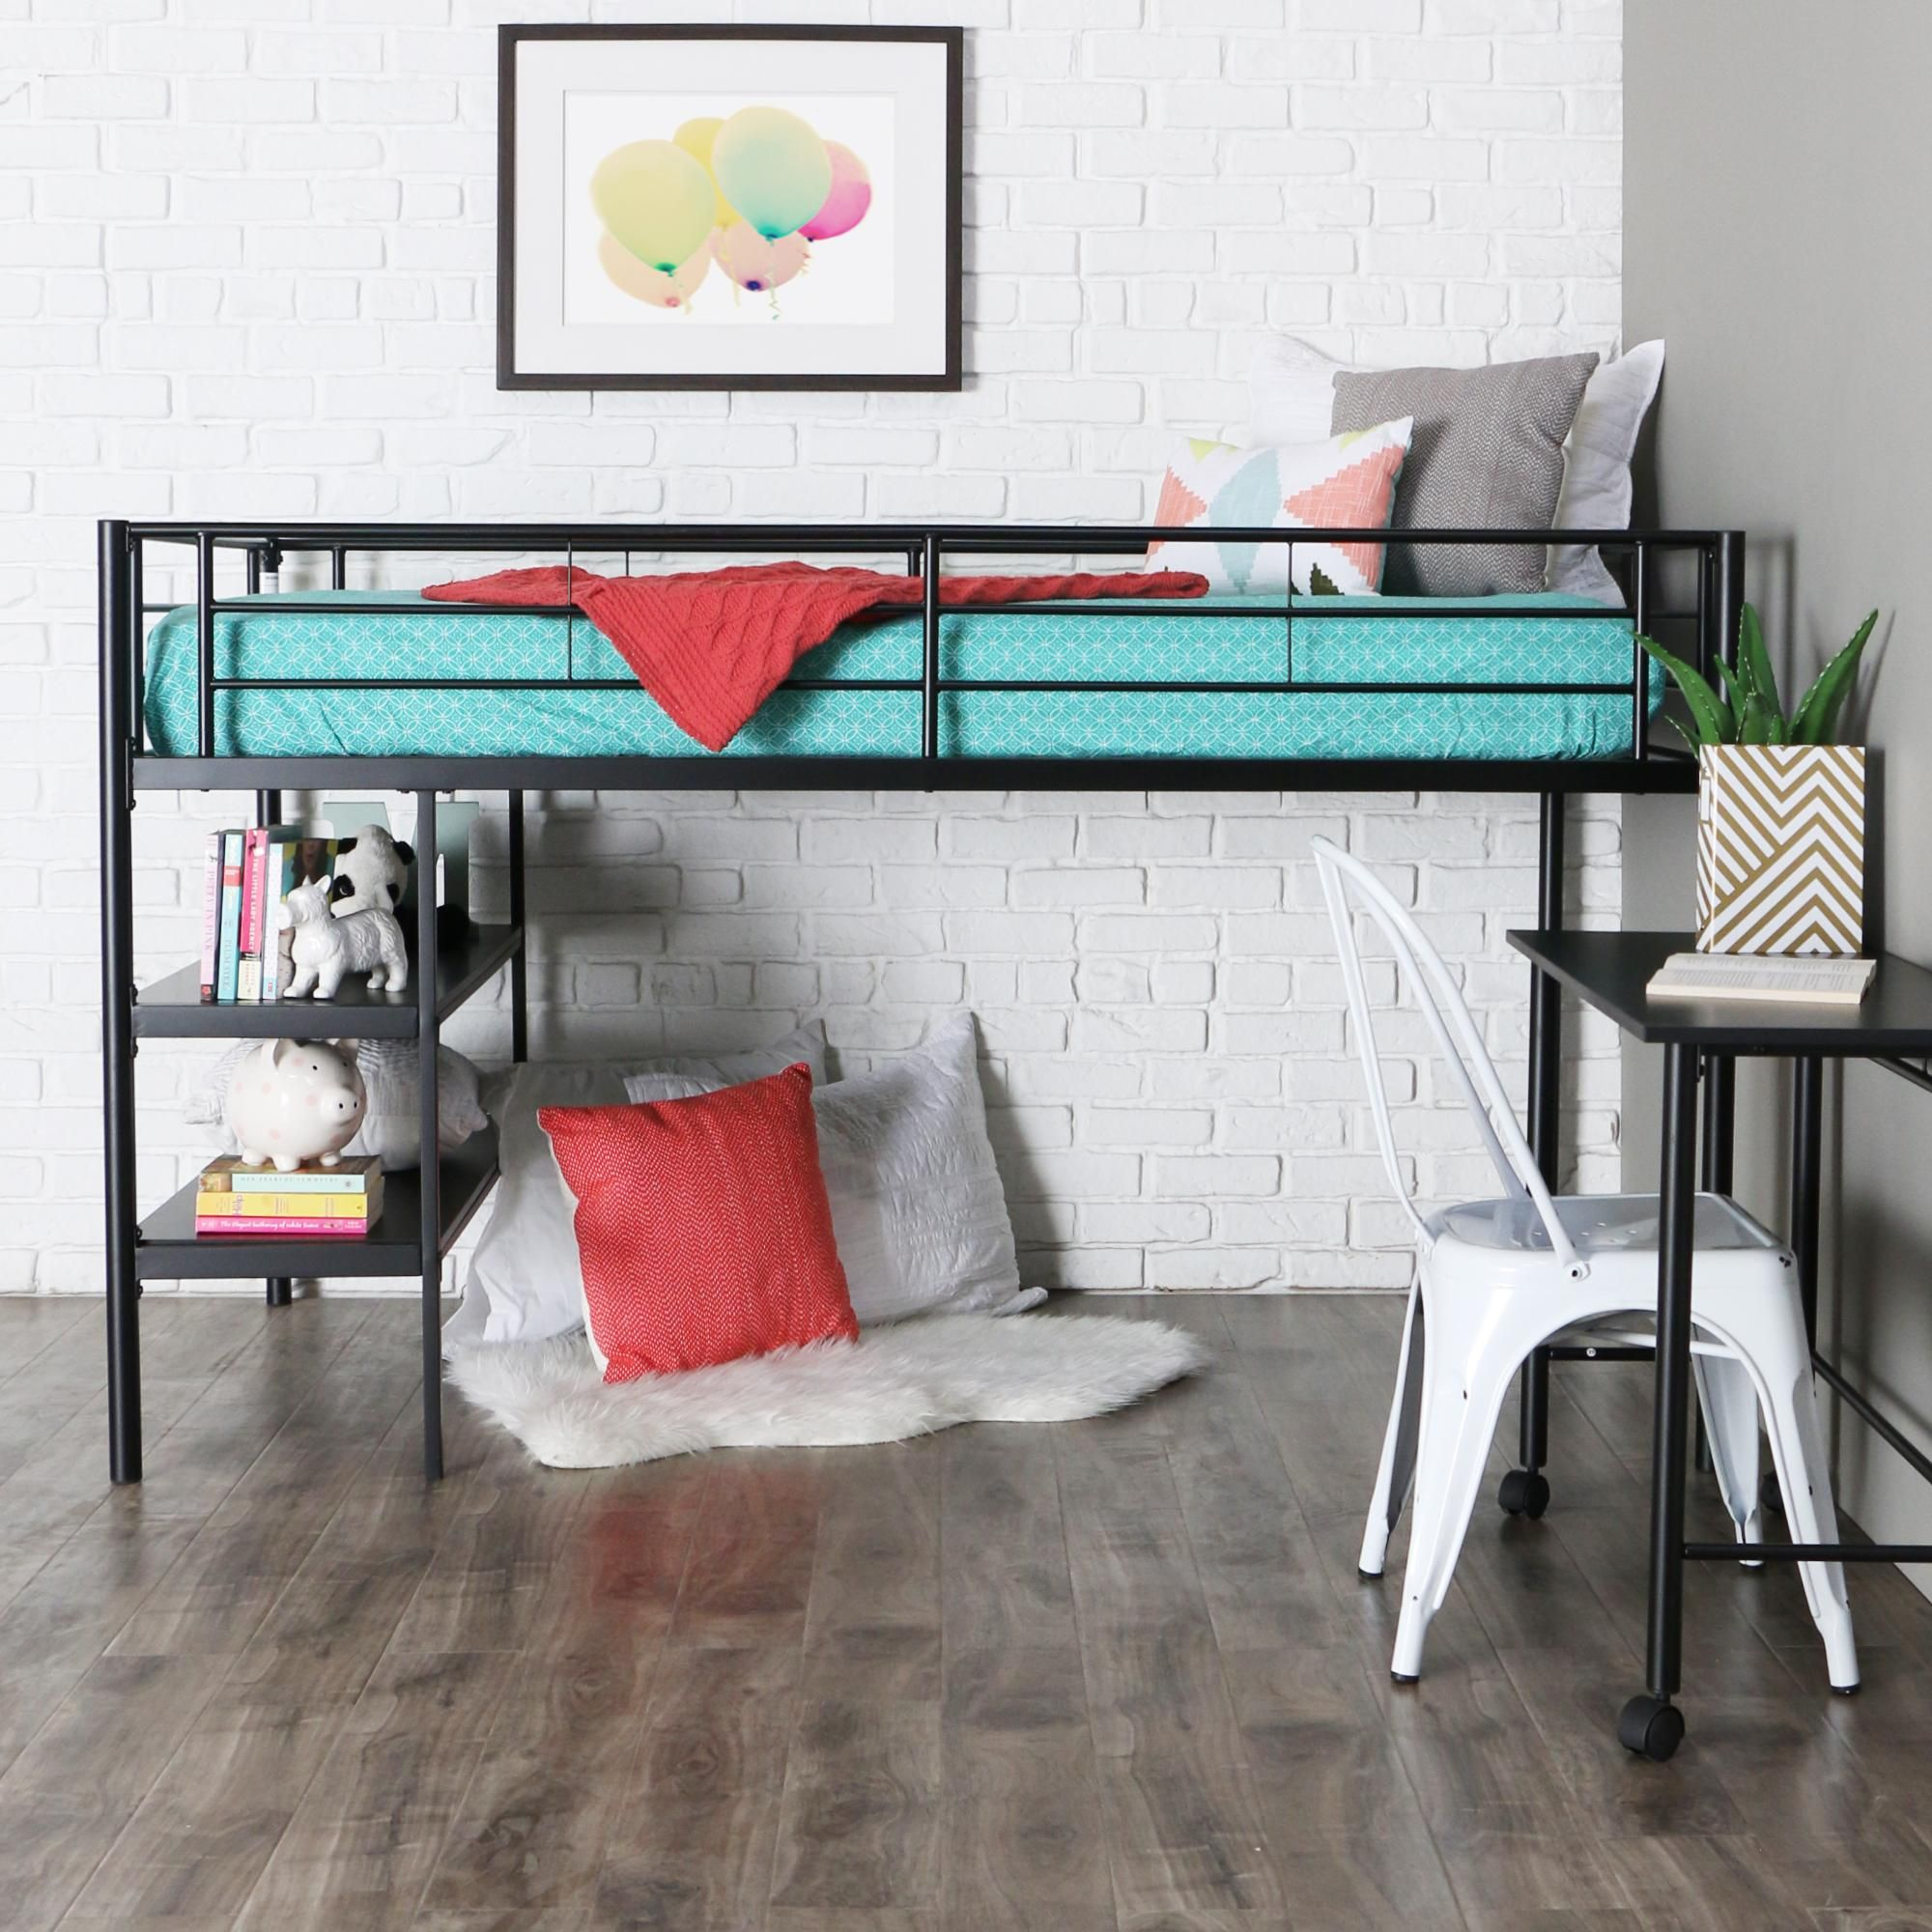 Childrens loft bedroom ideas   Free DIY Bunk Bed Plans u Ideas that Will Save a Lot of Bedroom